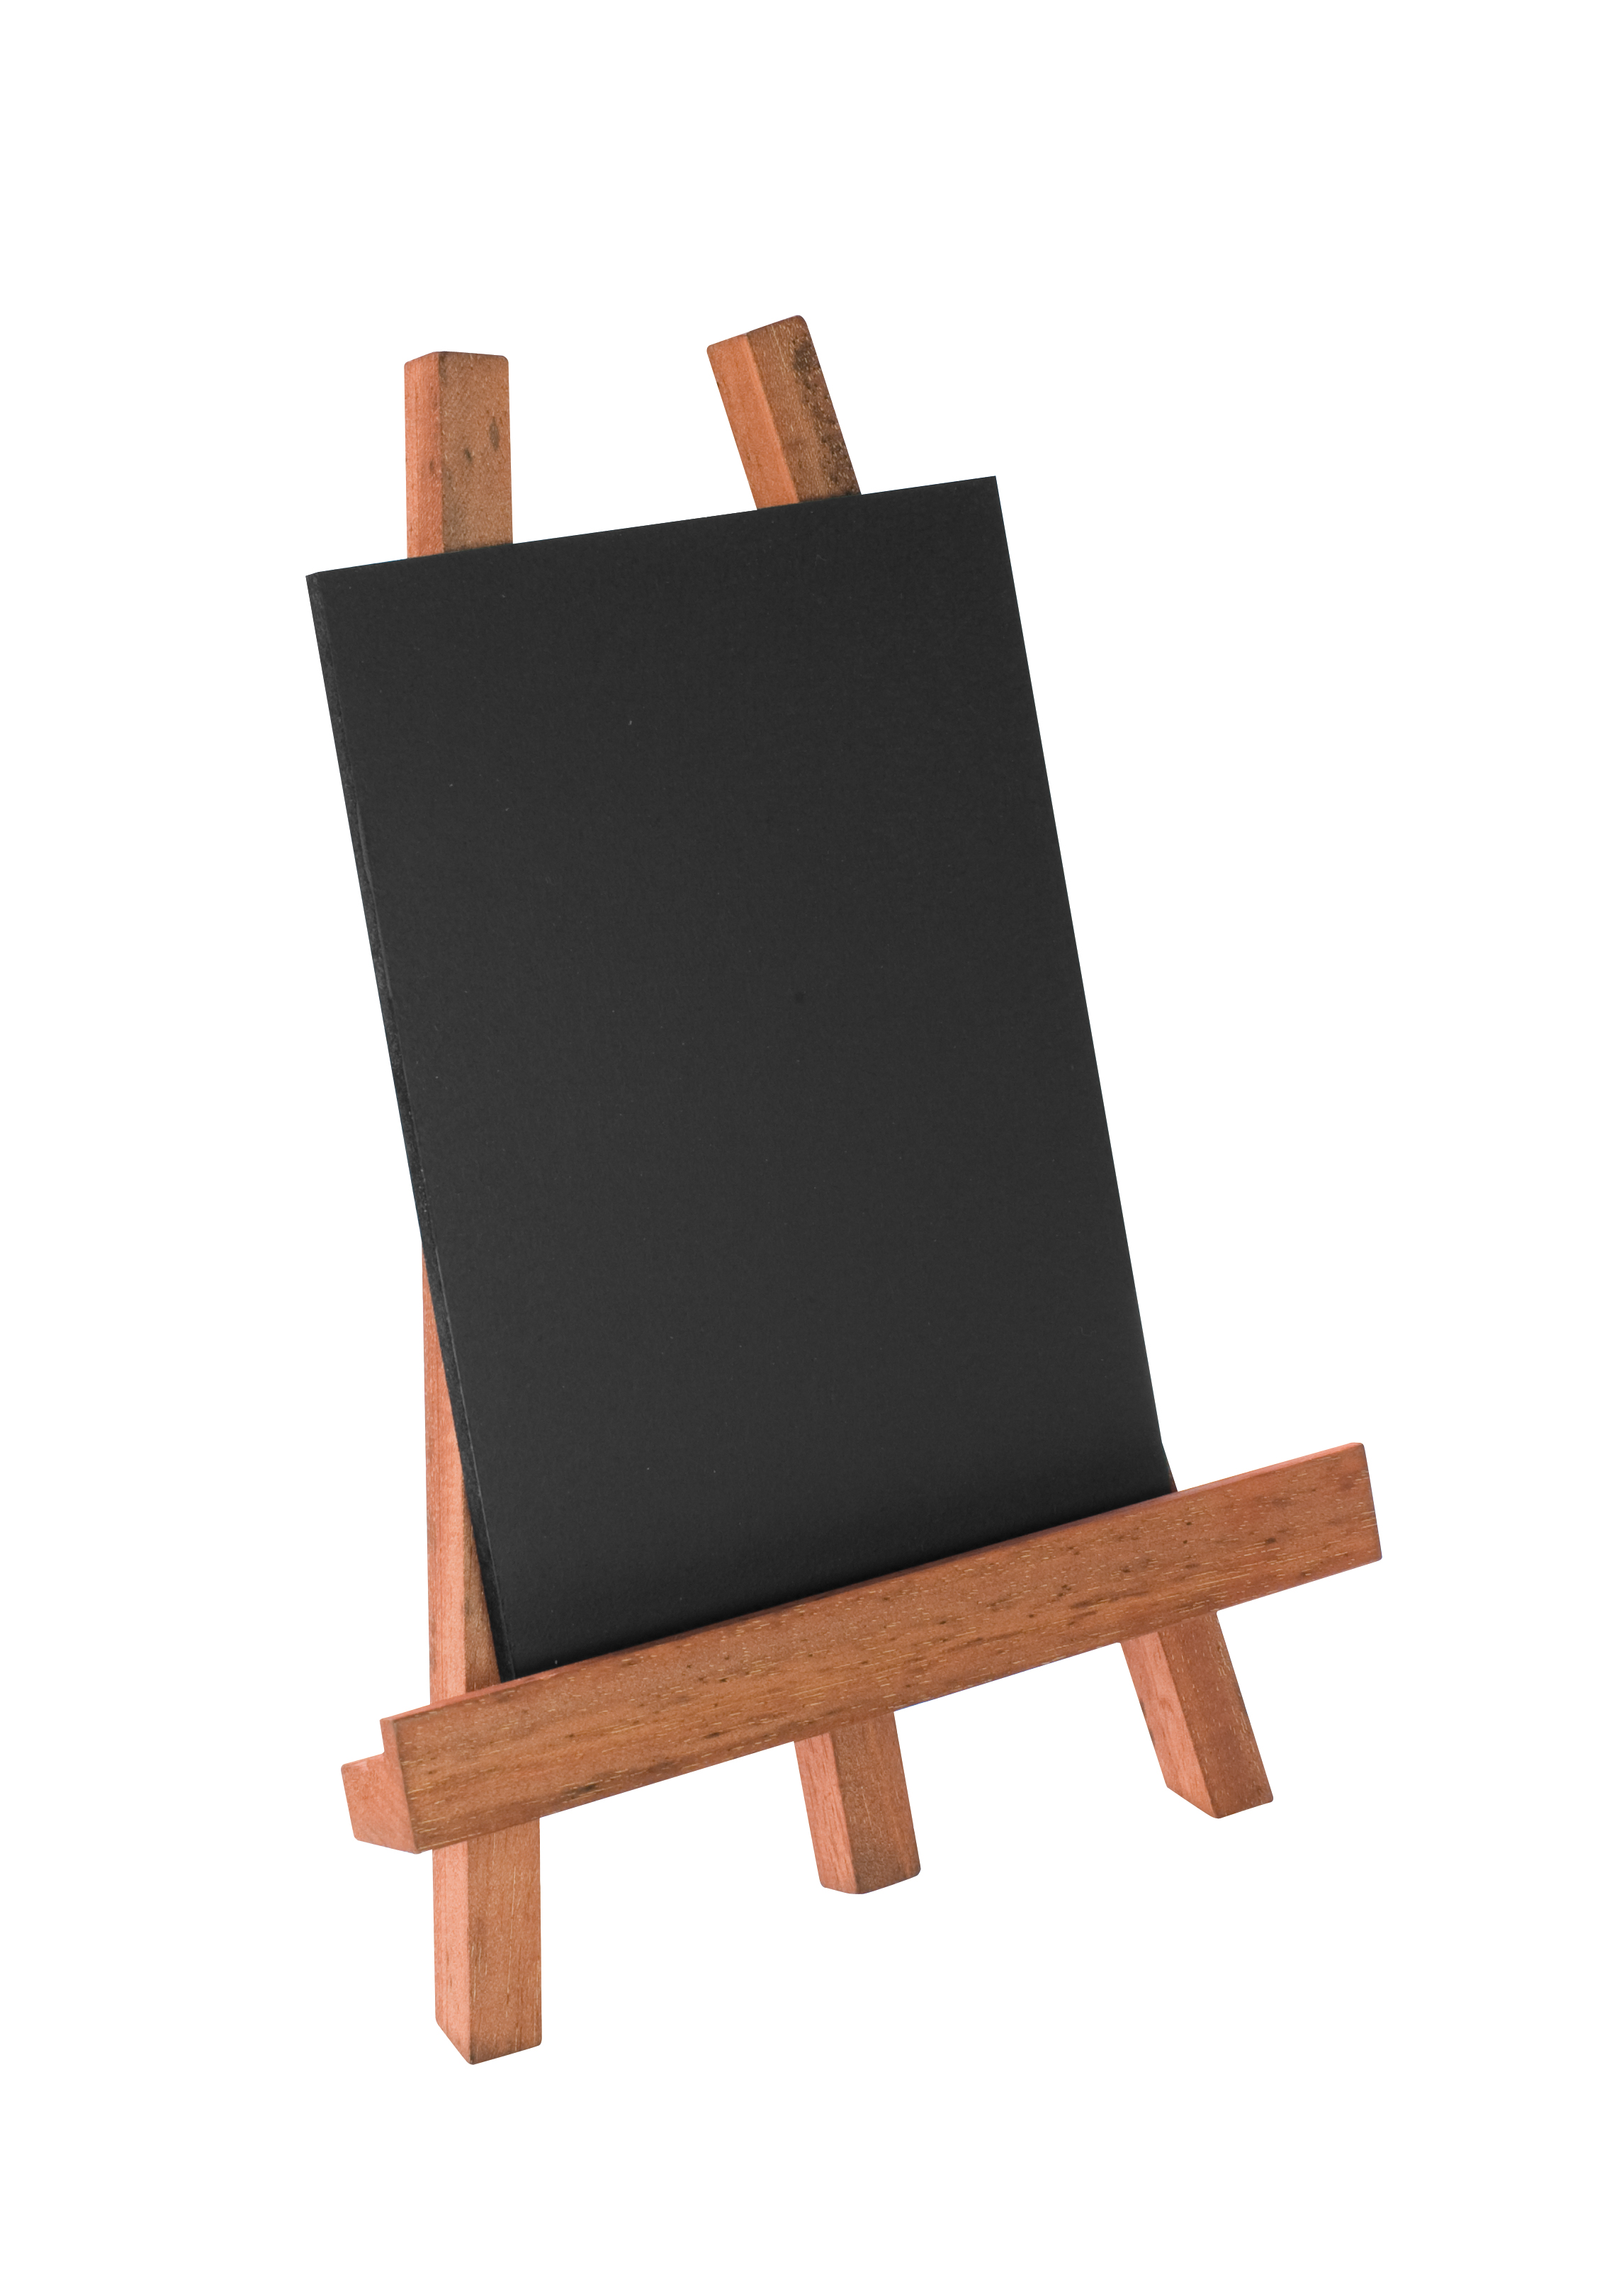 detail product buy easels tabletop wholesale top metal easel table